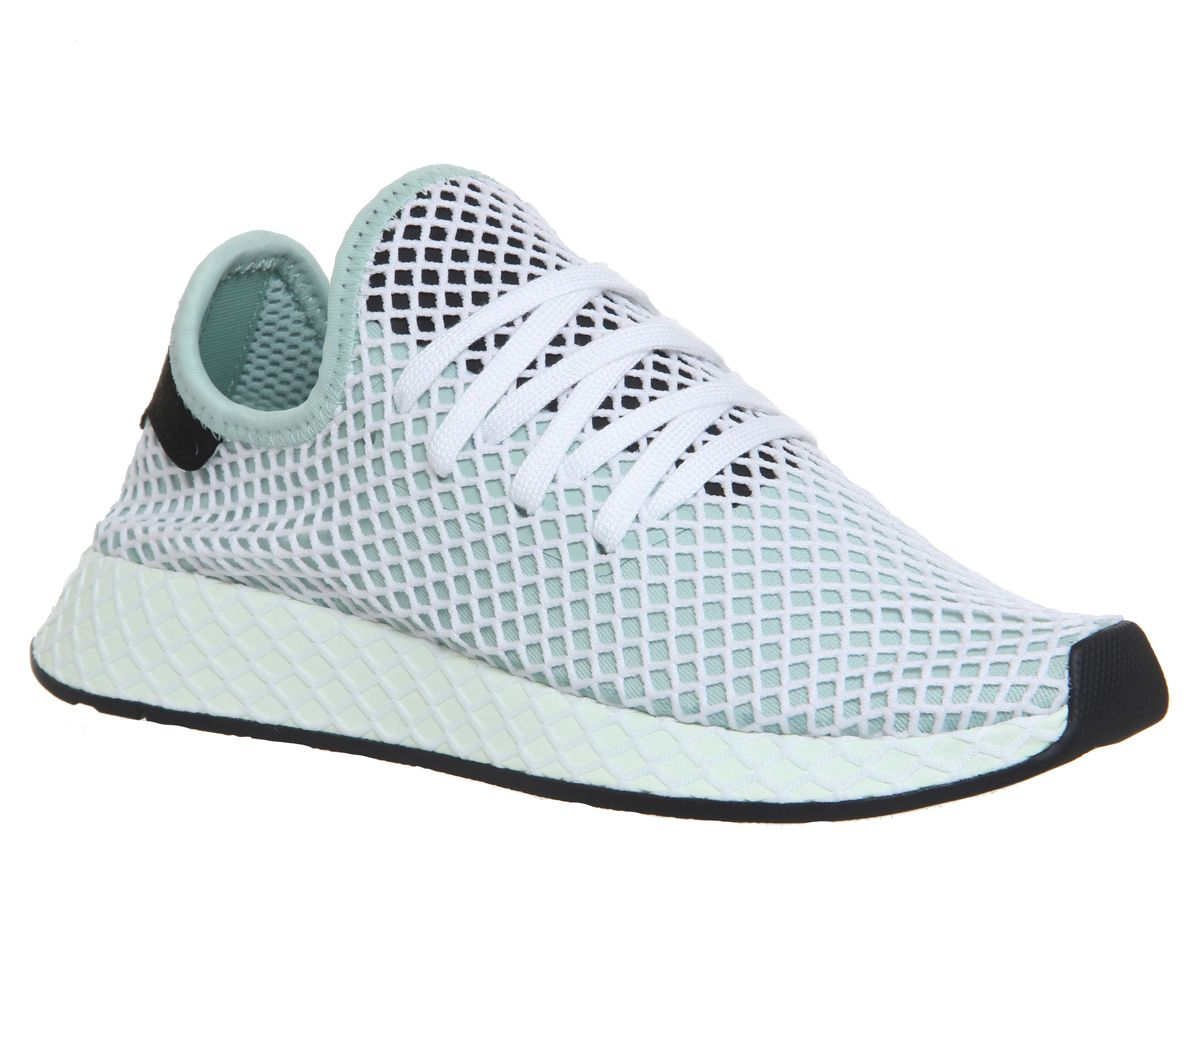 6060df4a0 adidas Deerupt Trainers Ash Green Core Black W - Hers trainers